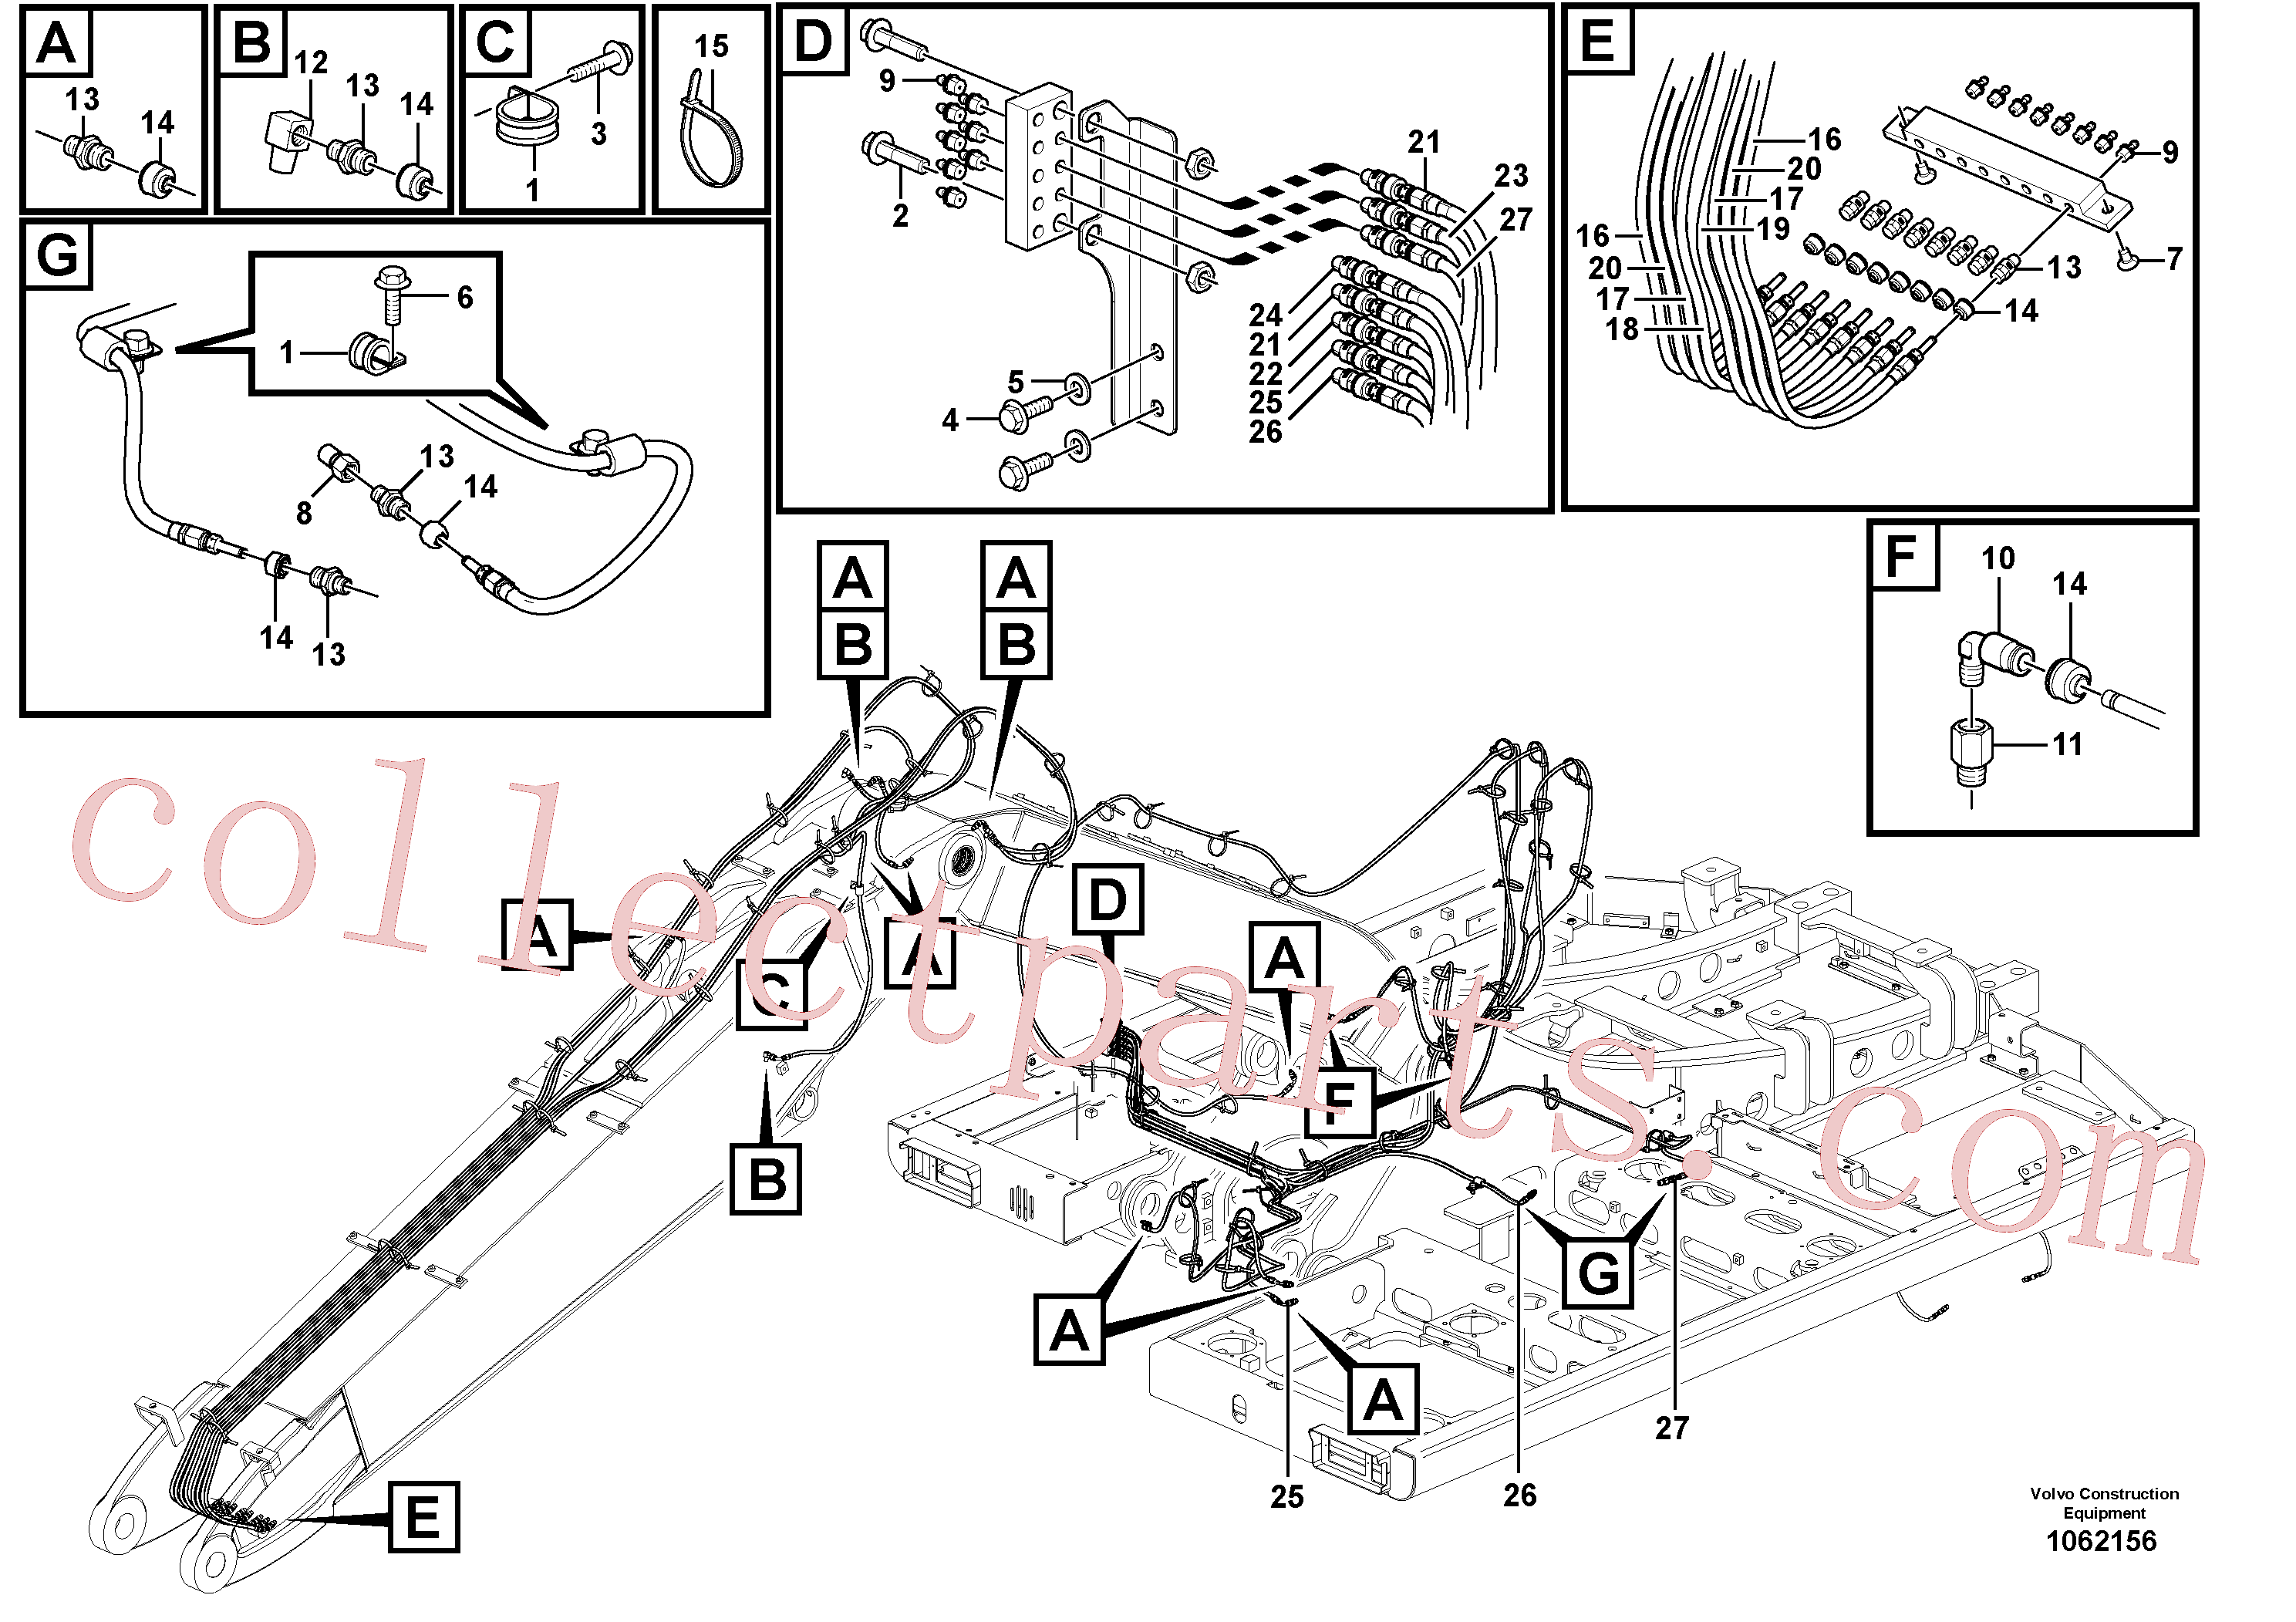 VOE14388450 for Volvo Grease Piping(1062156 assembly)